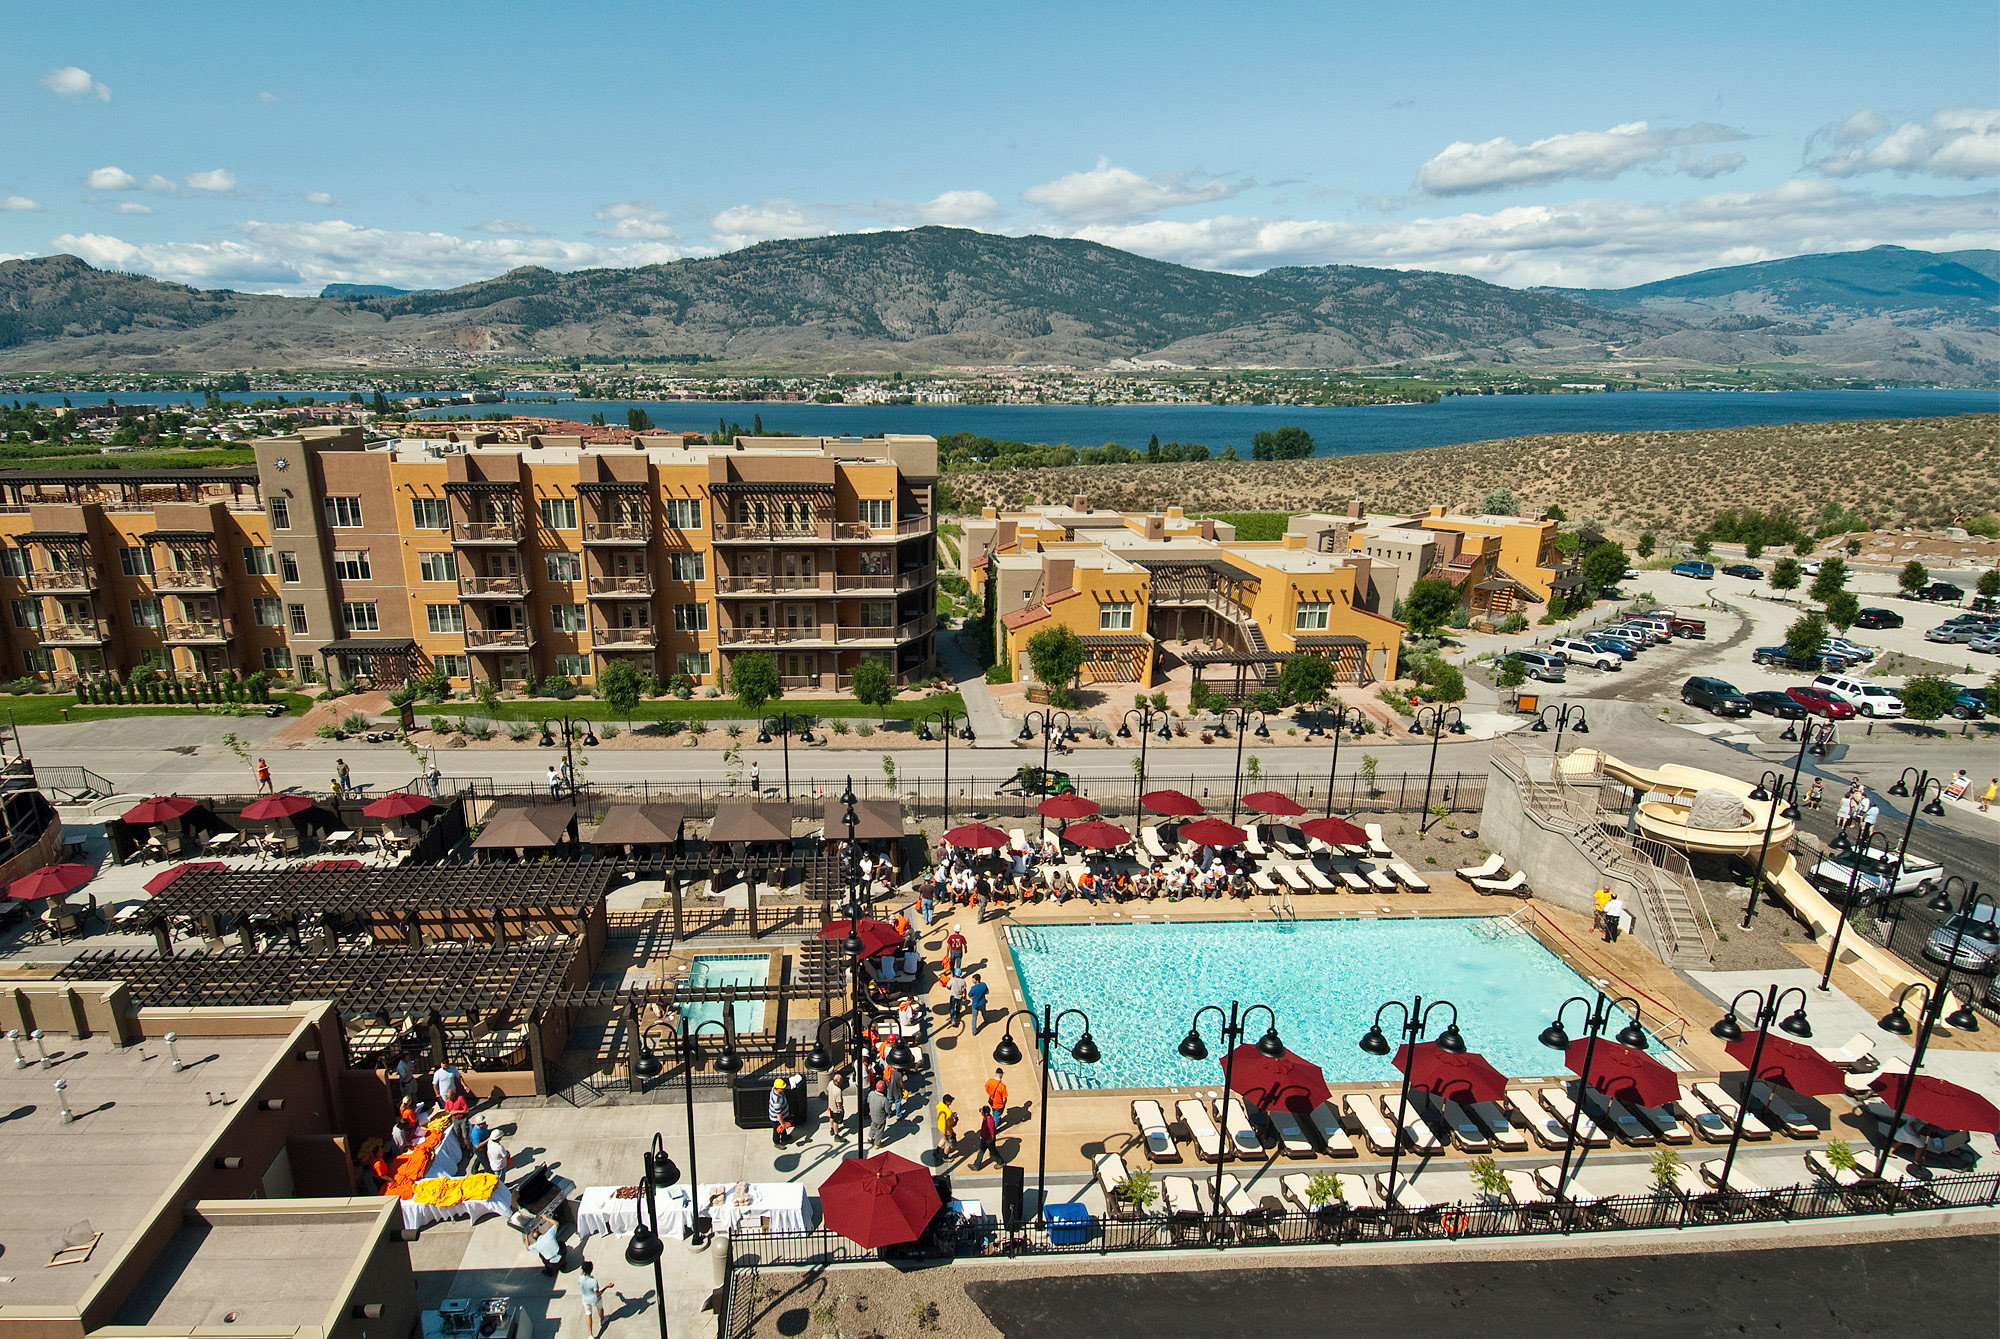 Drink Honeymoon Mountains Pool Resort Romance Vineyard Wine-Tasting Winery sky Town mountain aerial photography sport venue marina cityscape stadium Sea town square walkway